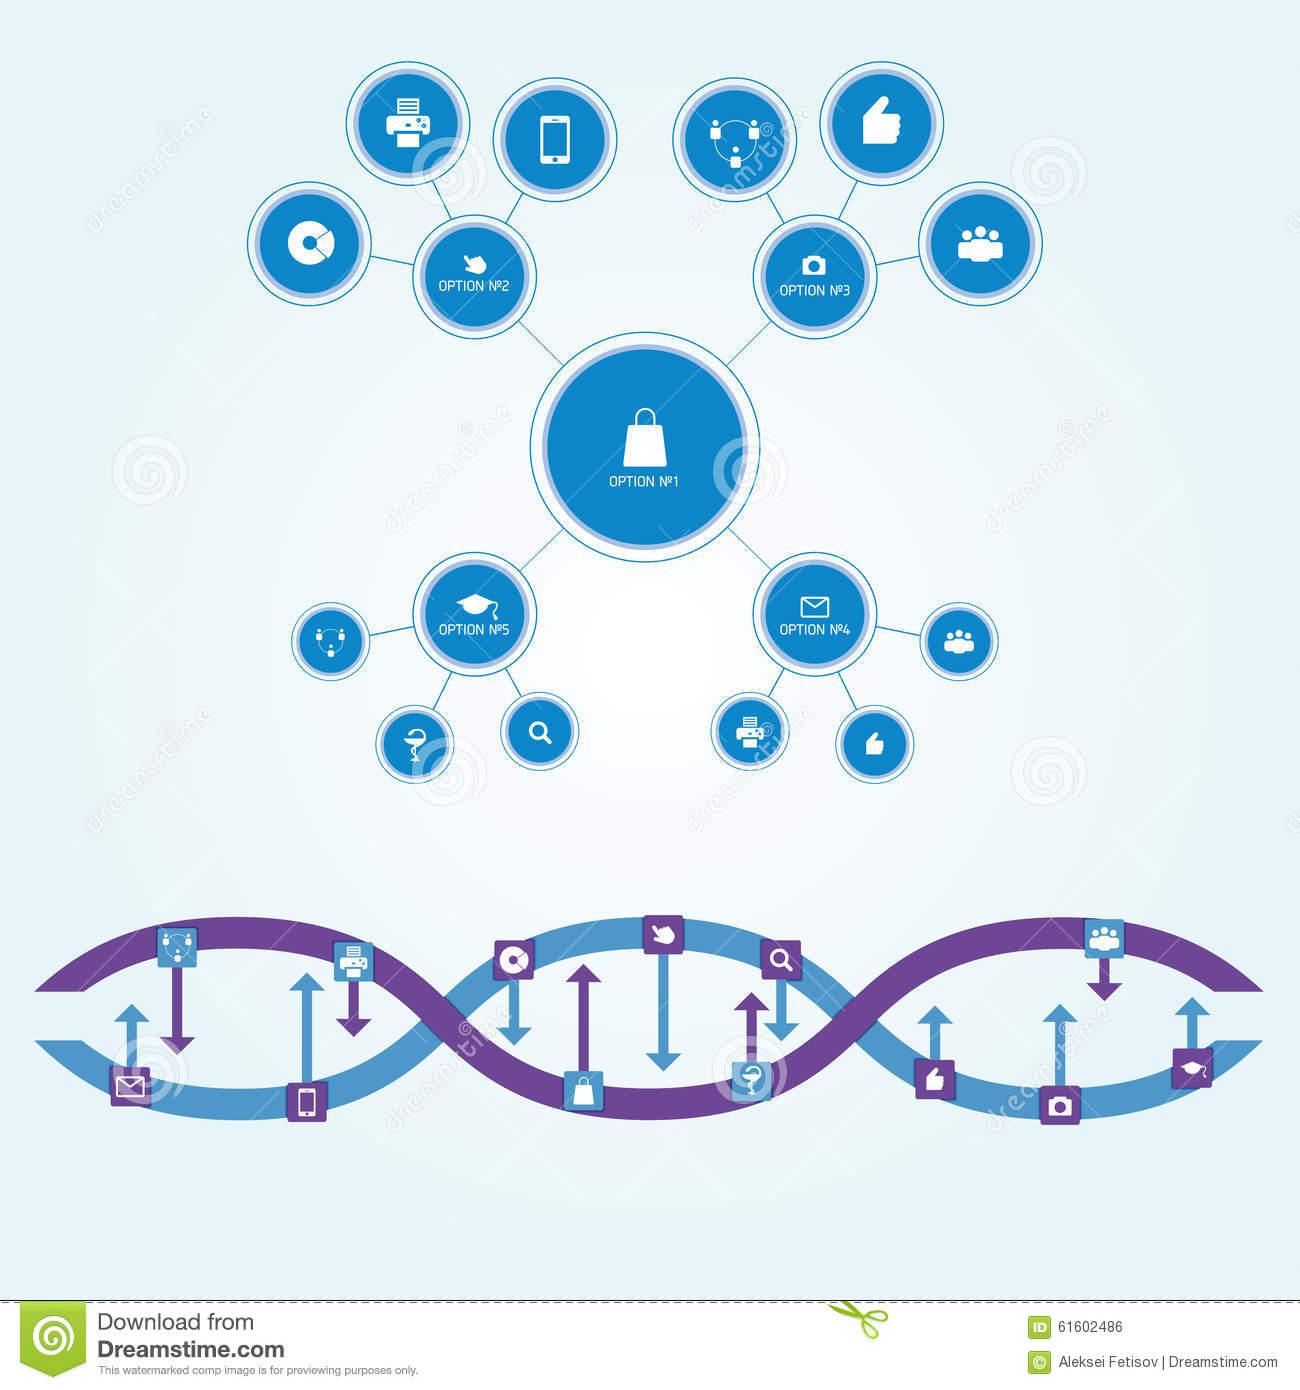 Flowchart scheme of circles of different sizes connected by straight lines in flat style. Interaction is depicted as chain of DNA.